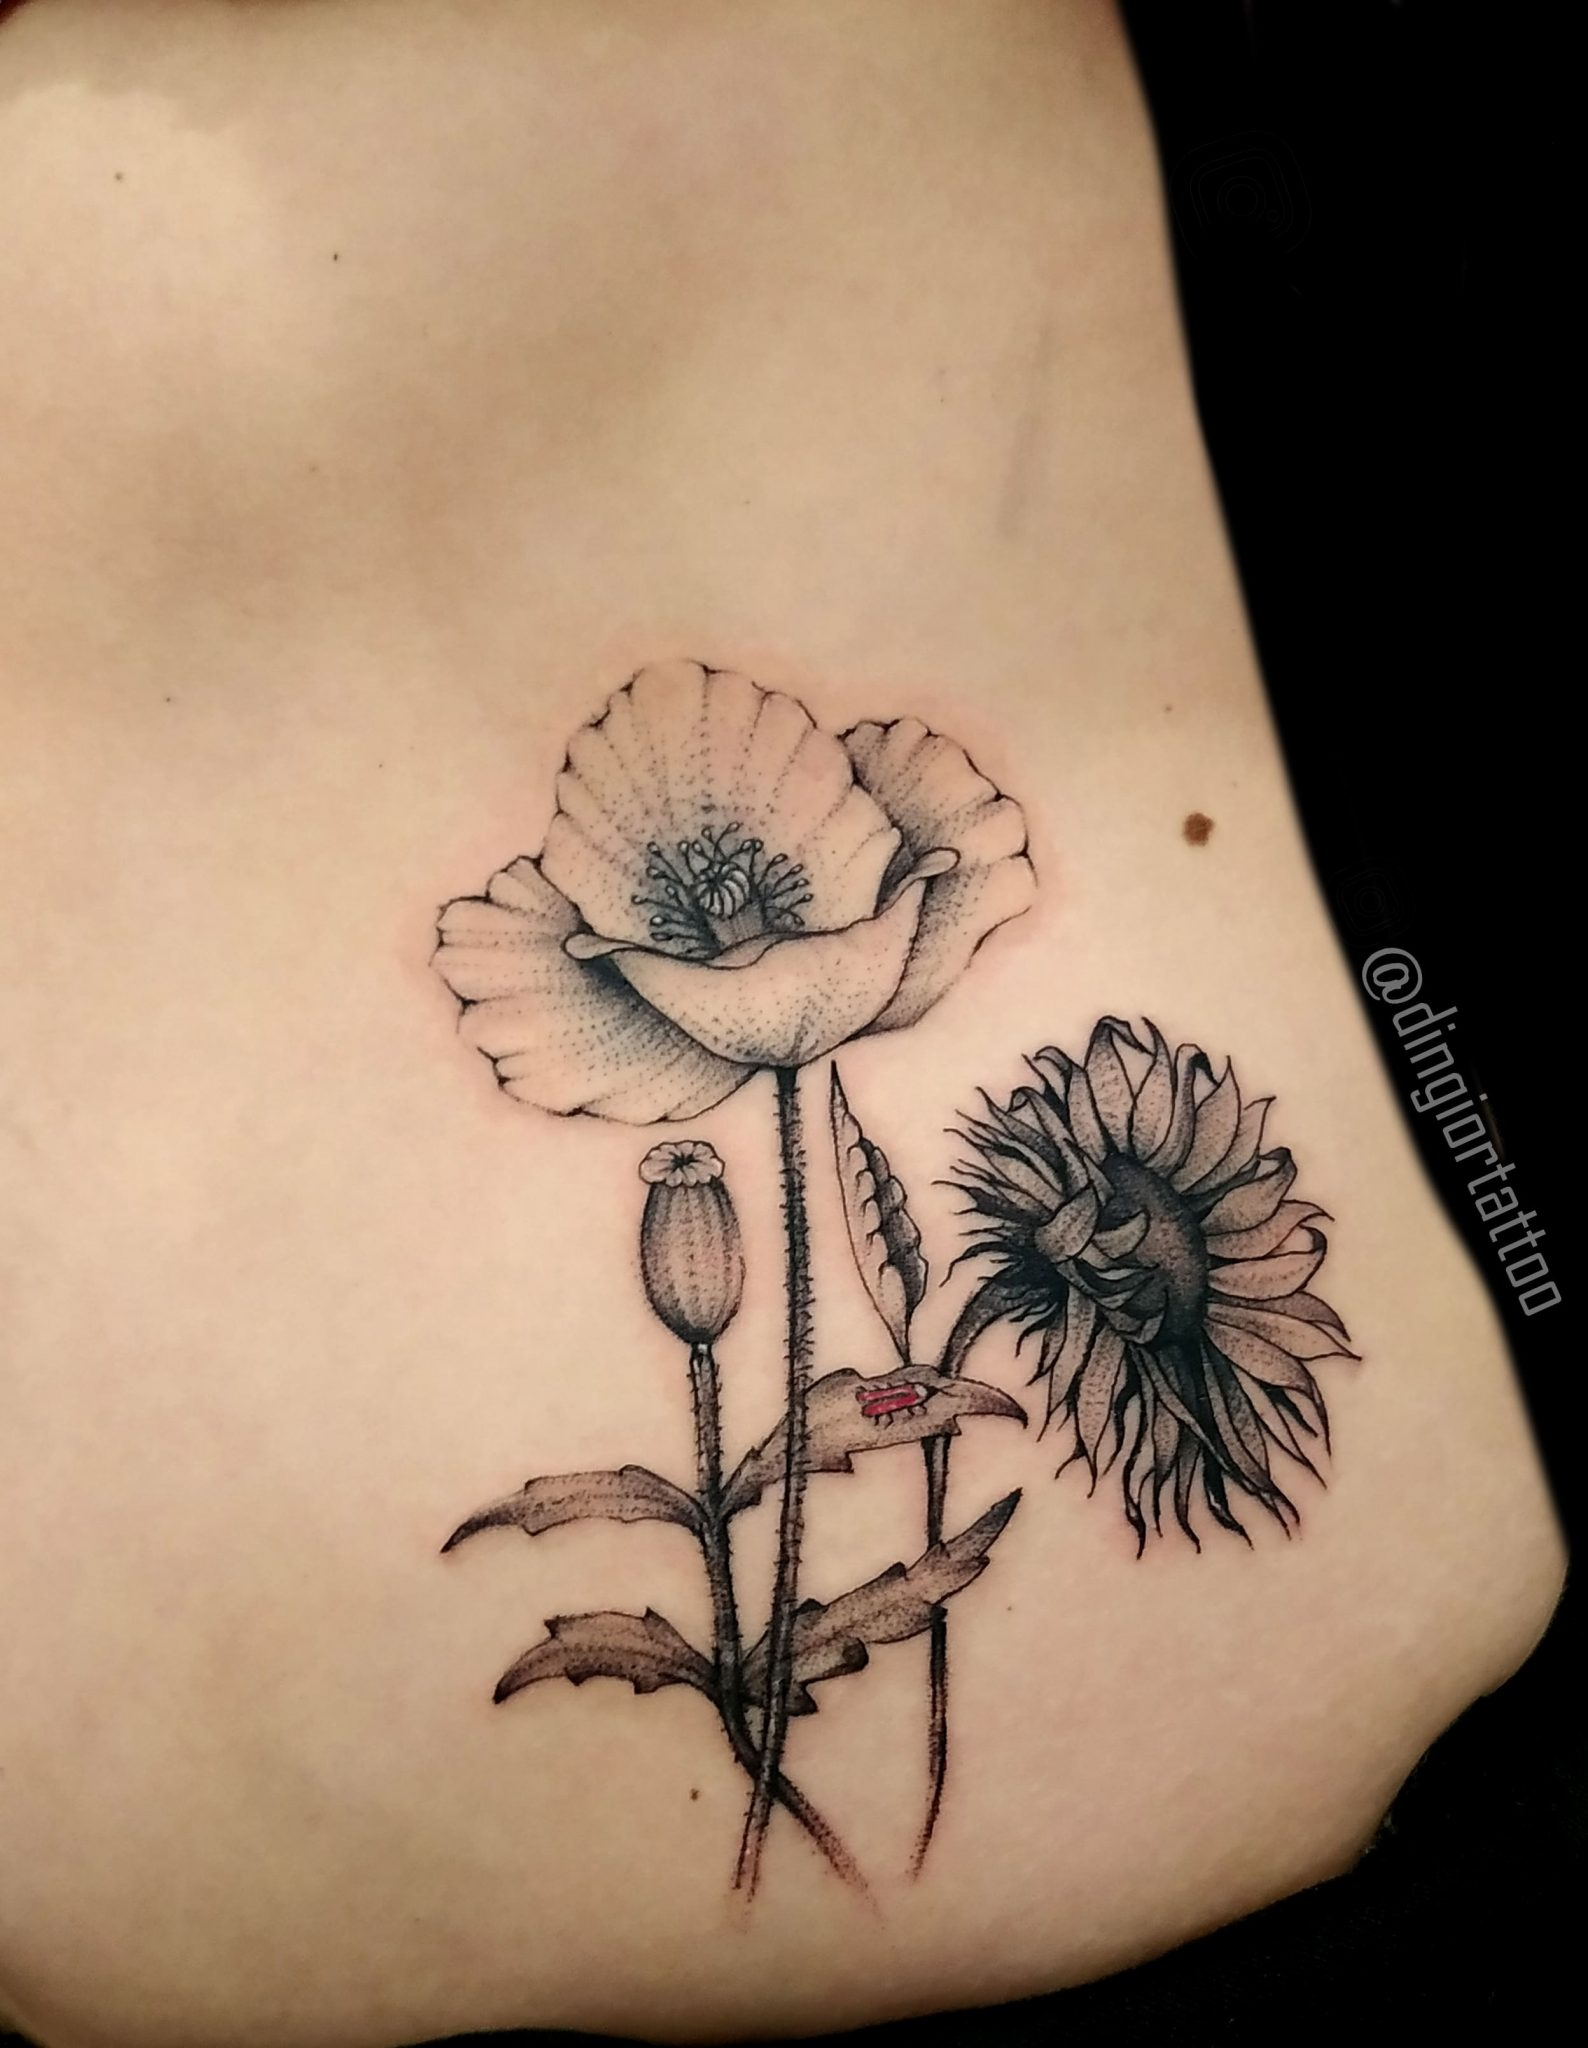 Tattoo Flowers (Graphics)